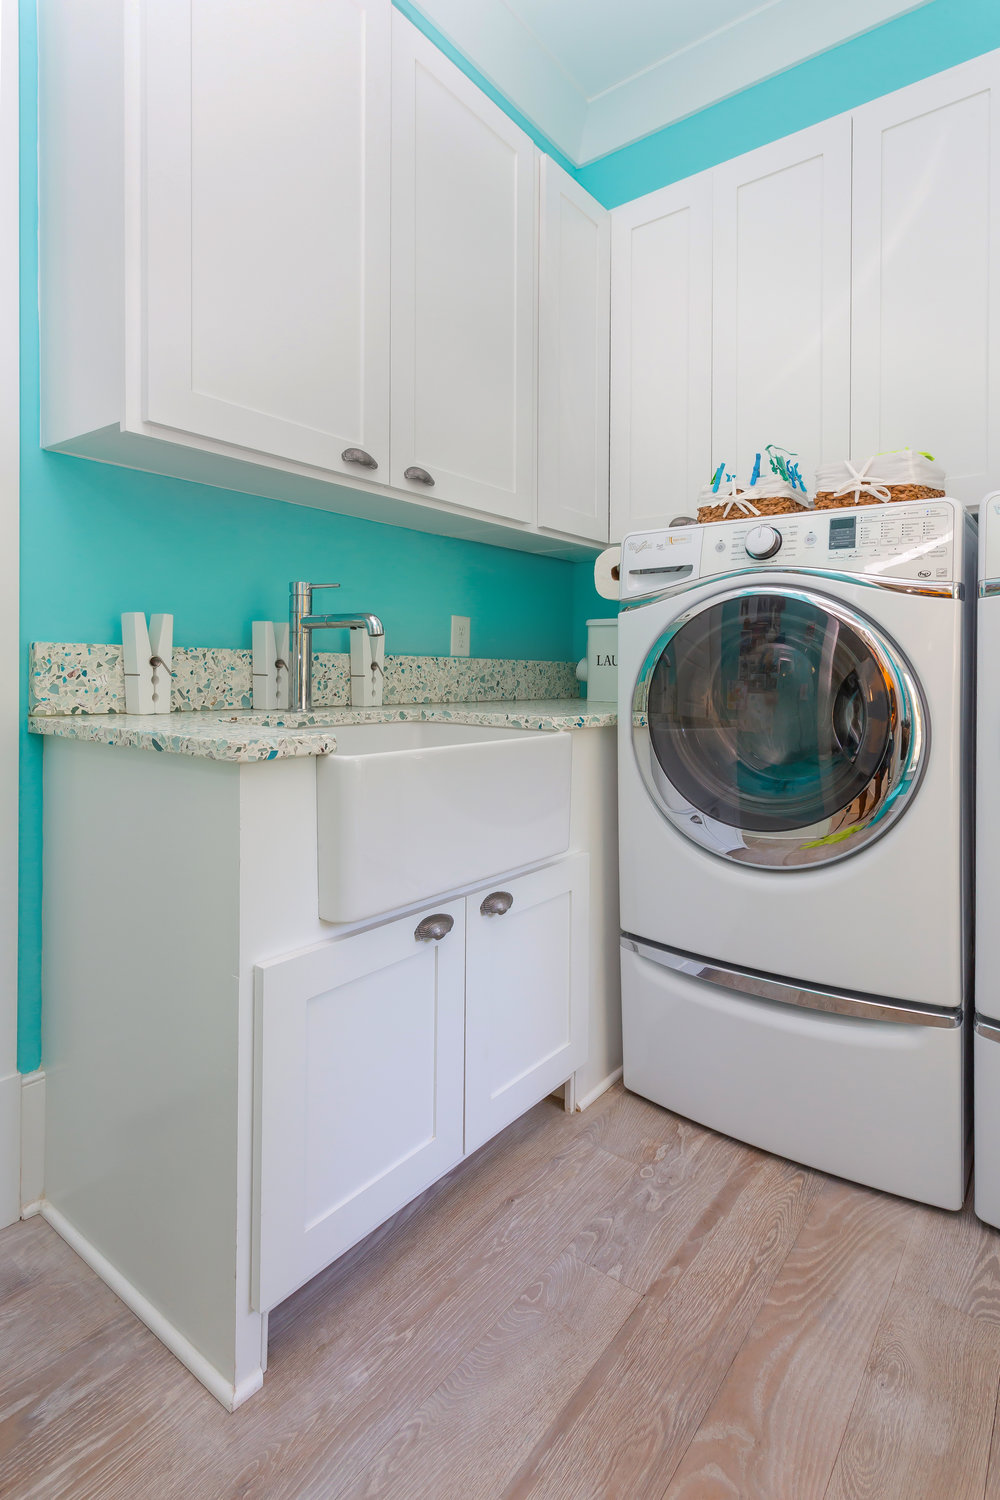 Forest Trail Laundry Room